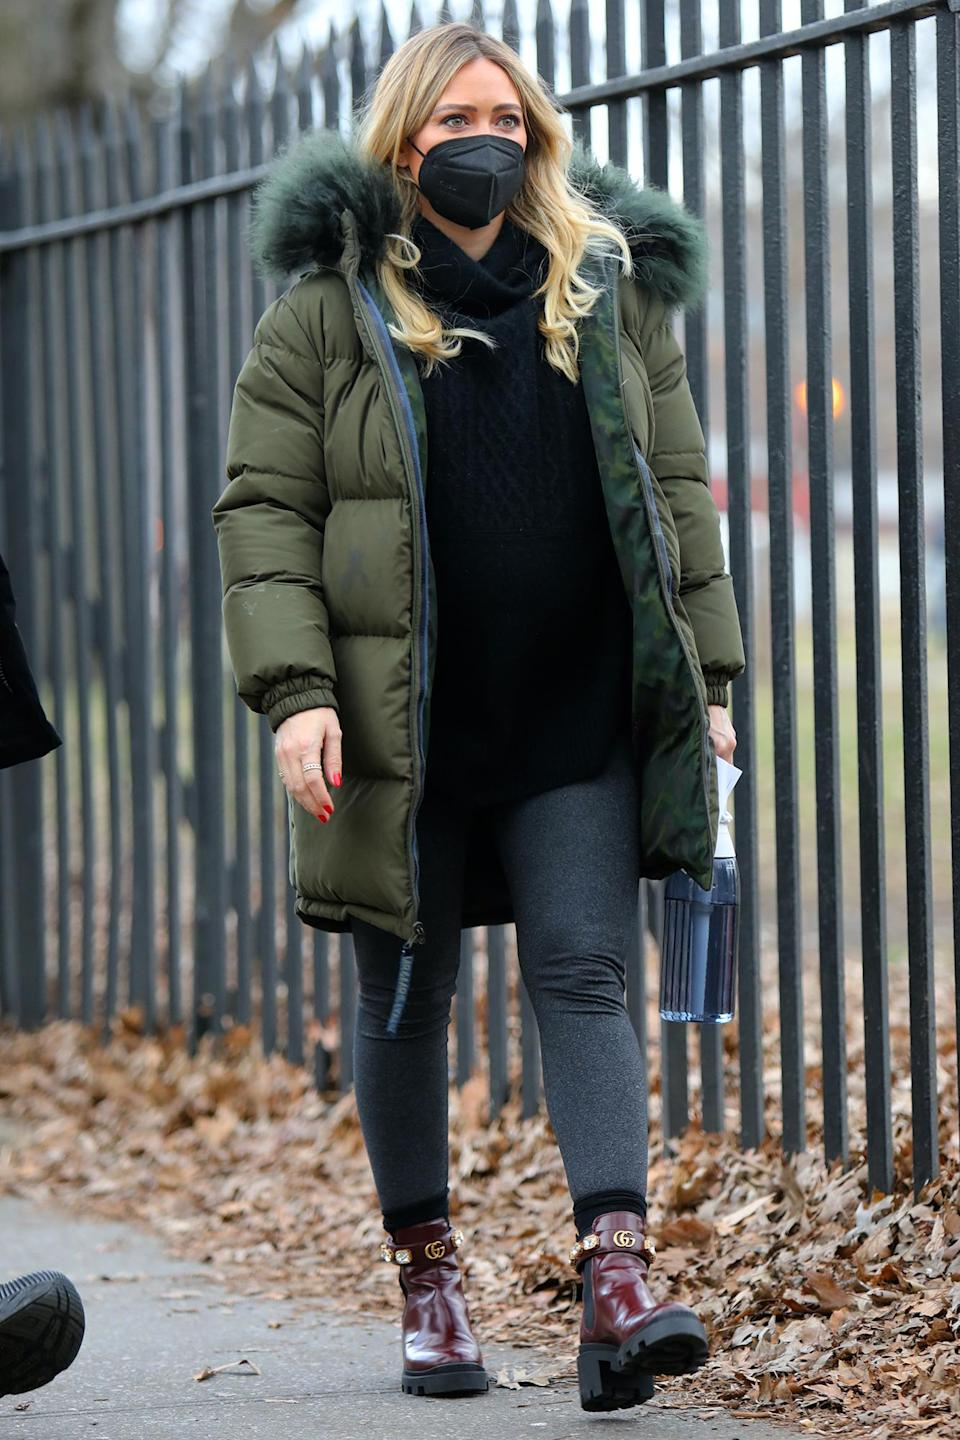 <p>Hilary Duff was out and about in New York City, wearing a face mask and bundling up in a puffer jacket.</p>